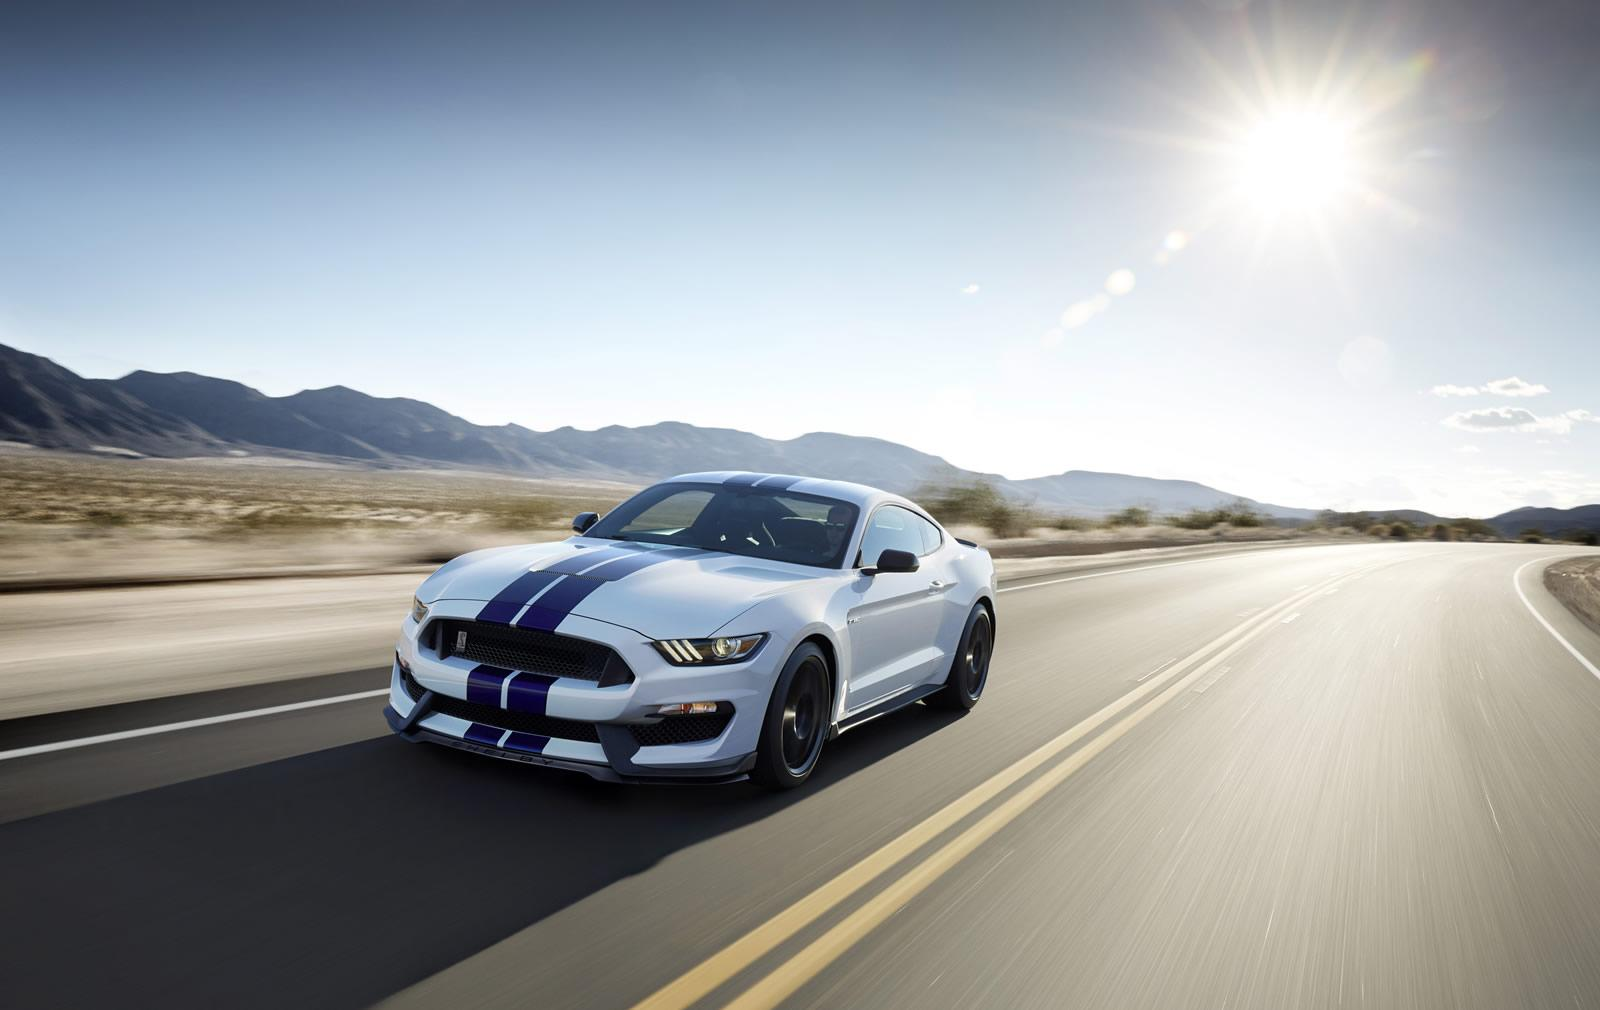 2015 Ford Shelby Gt350 #9